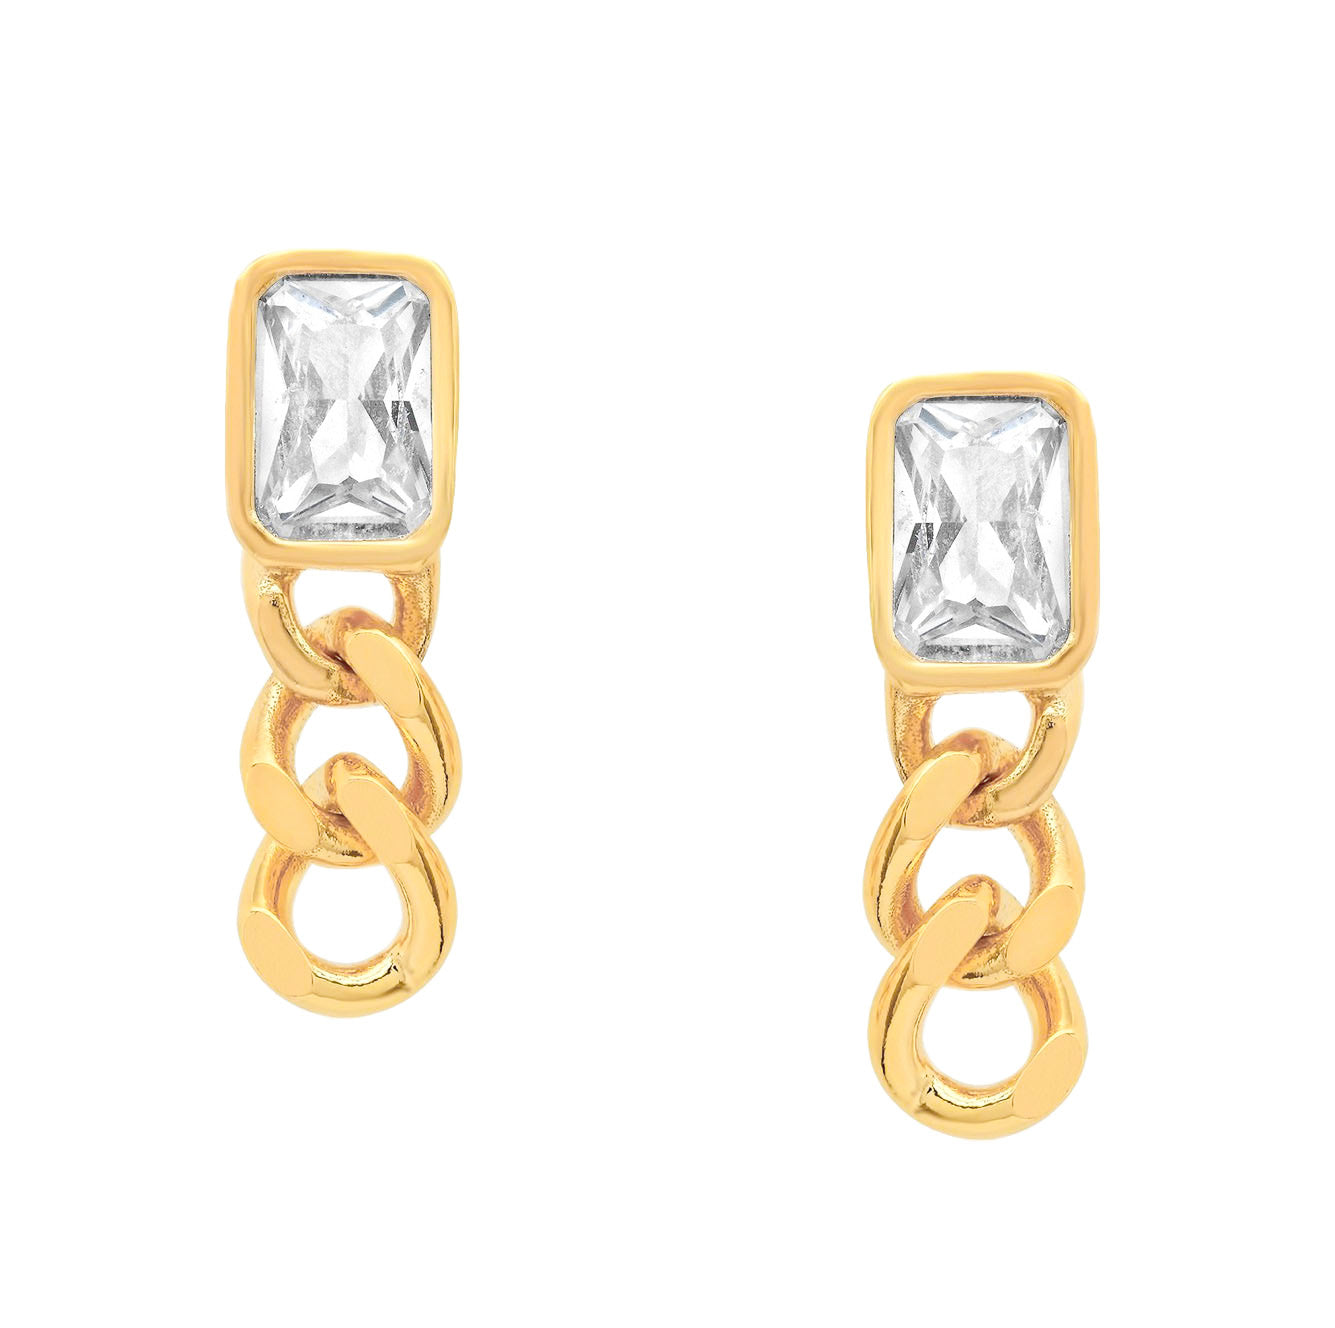 Chain Drop Stud Earrings